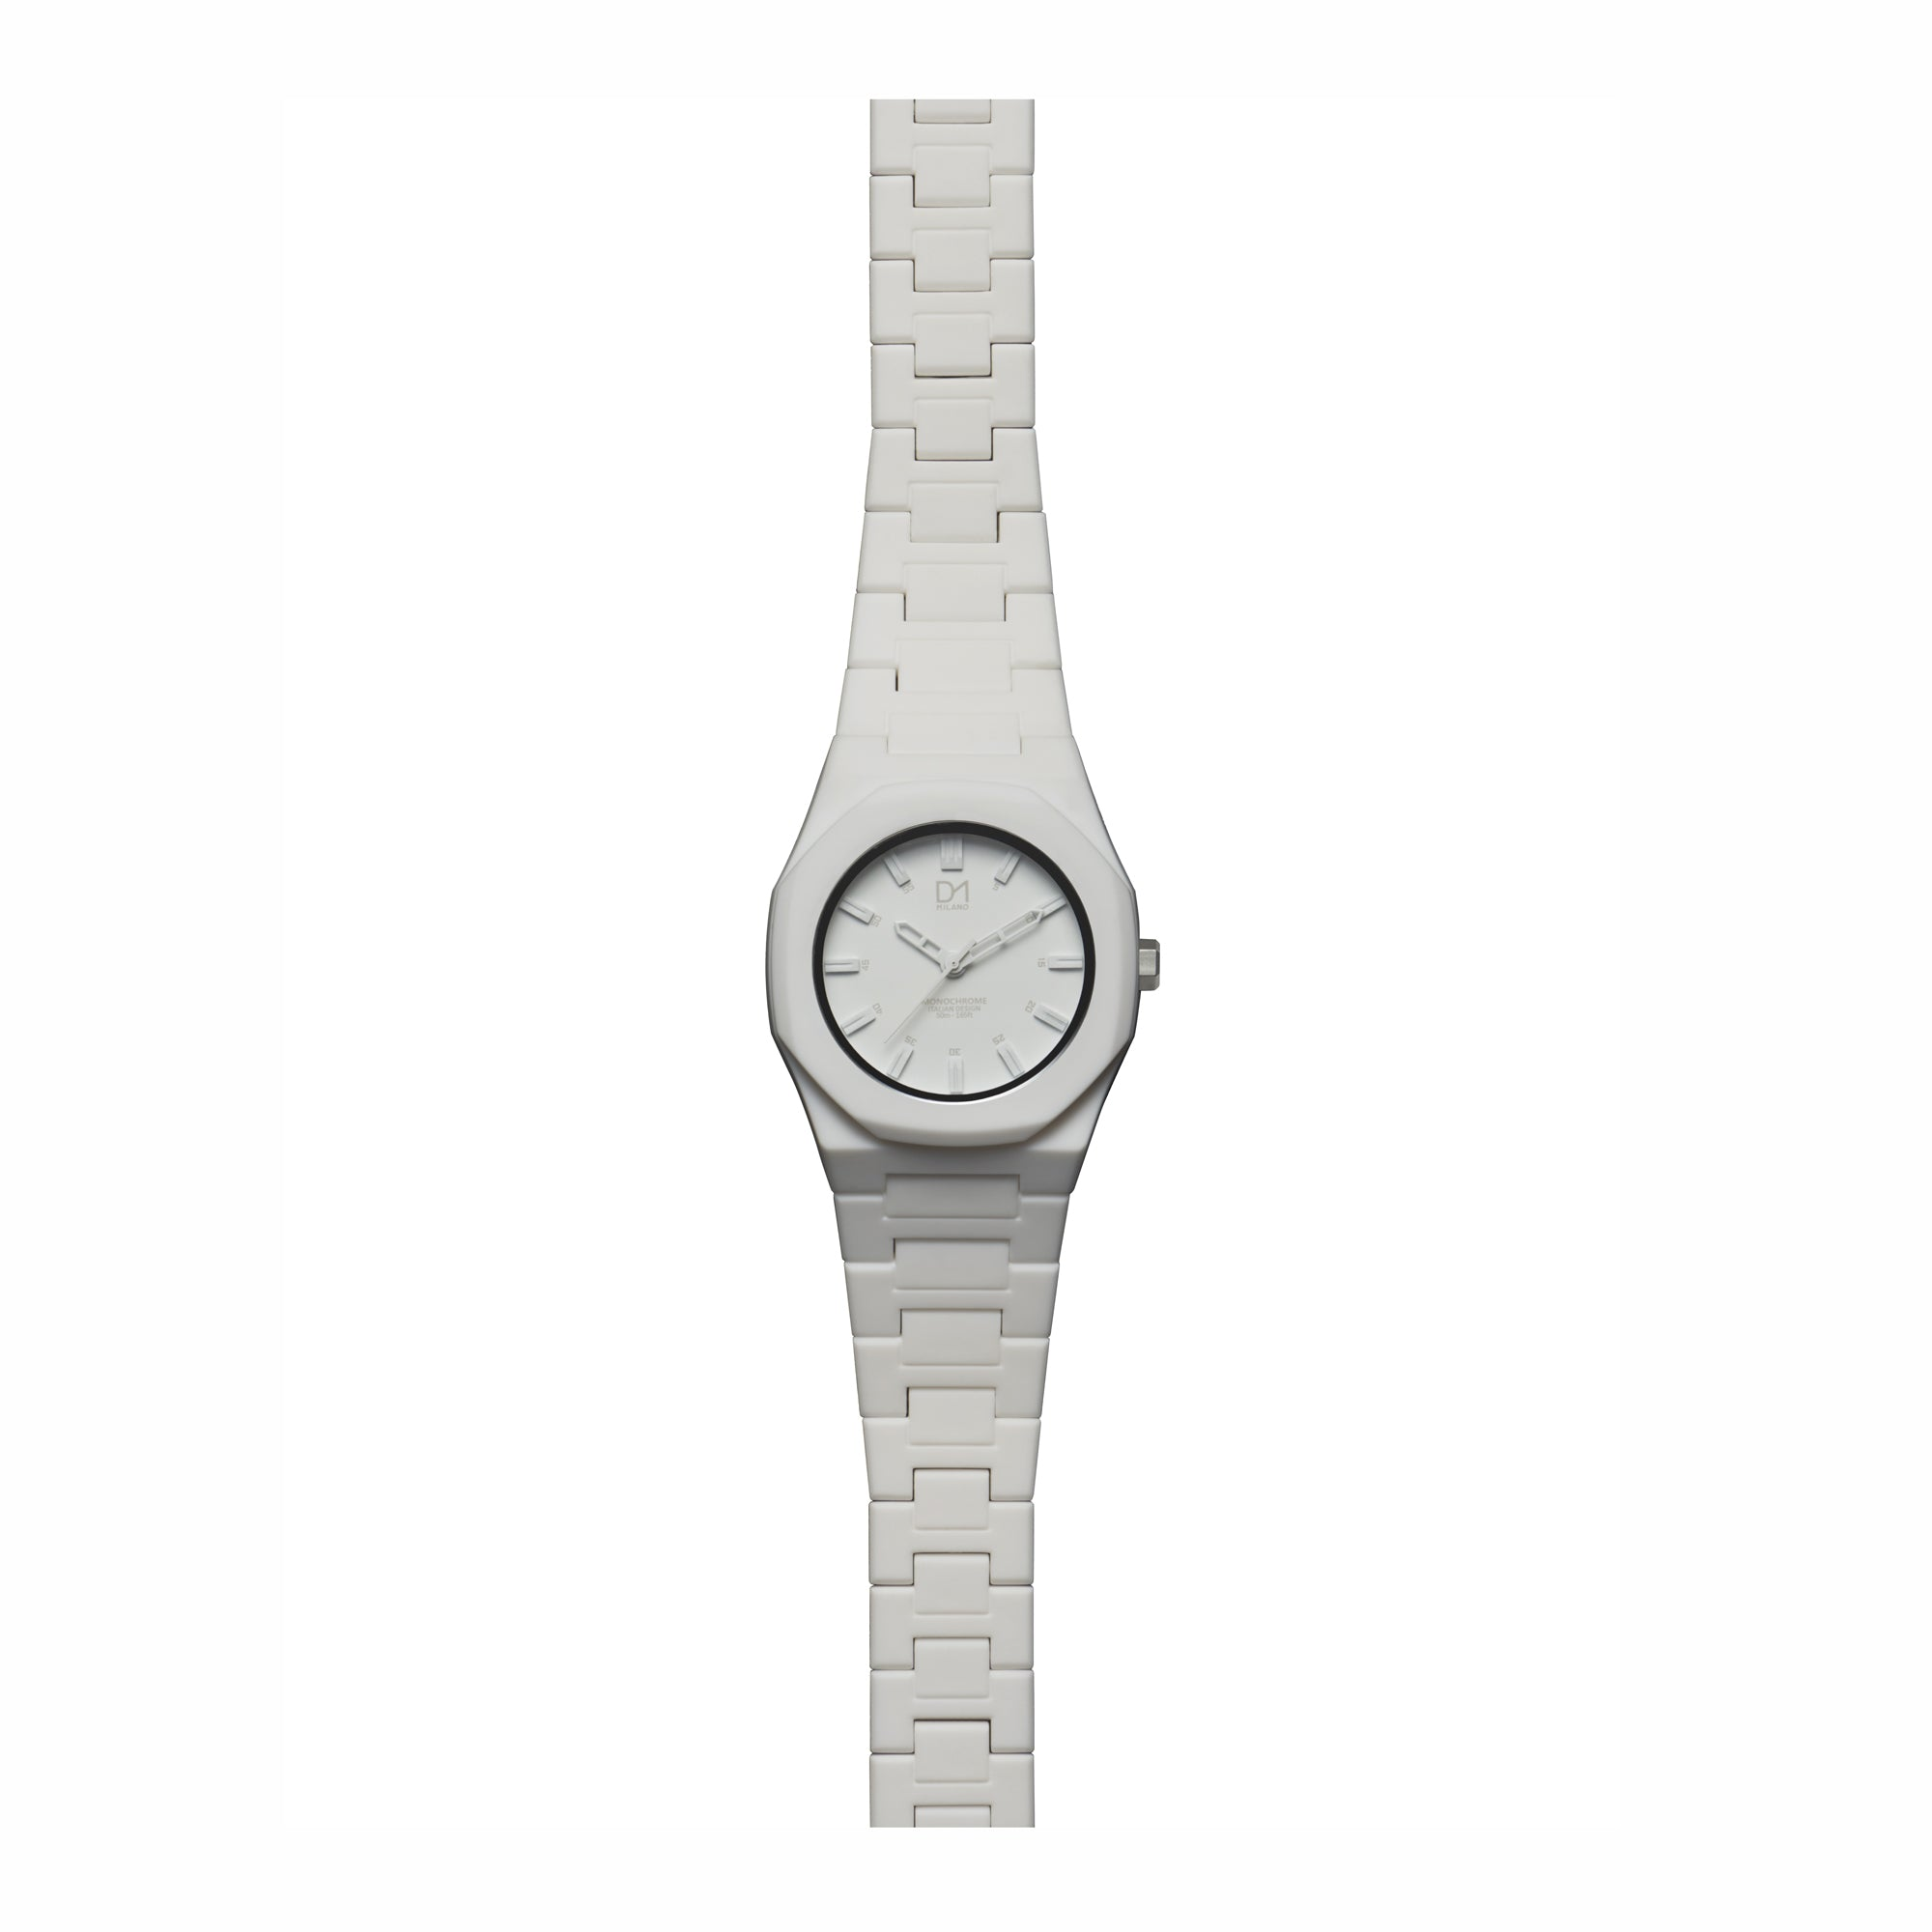 36mm white watch